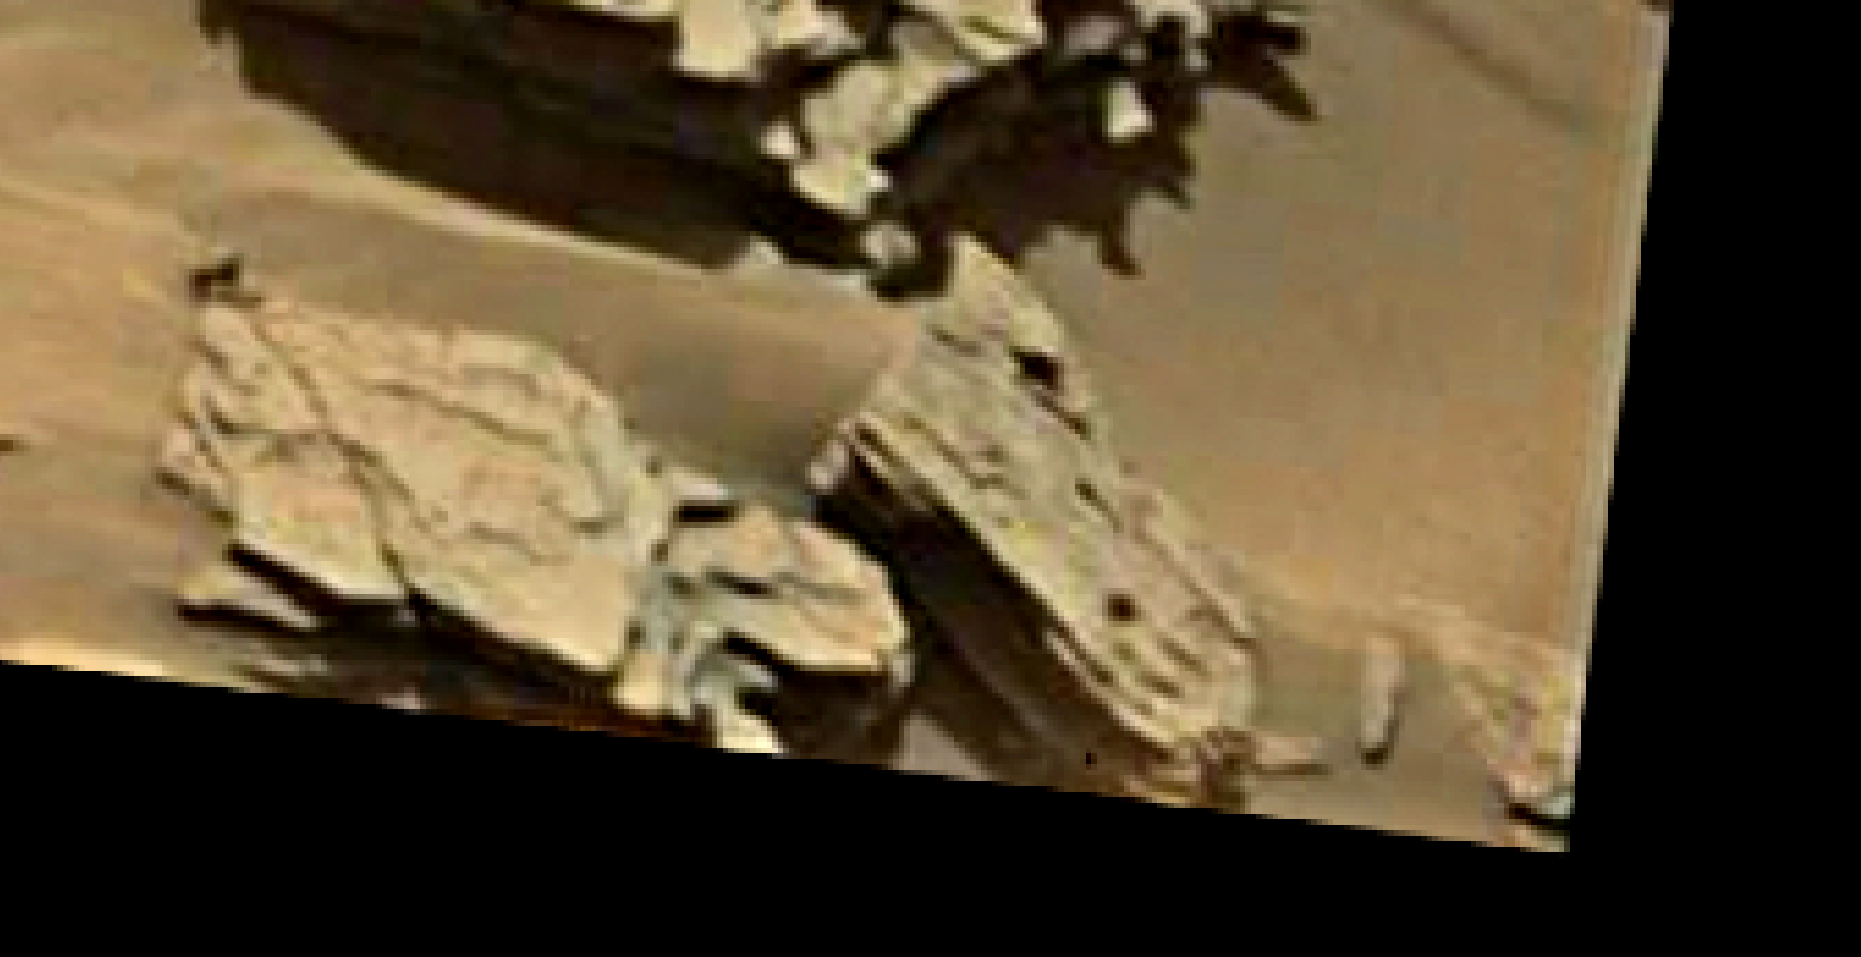 mars sol 1346 anomaly-artifacts 18 was life on mars